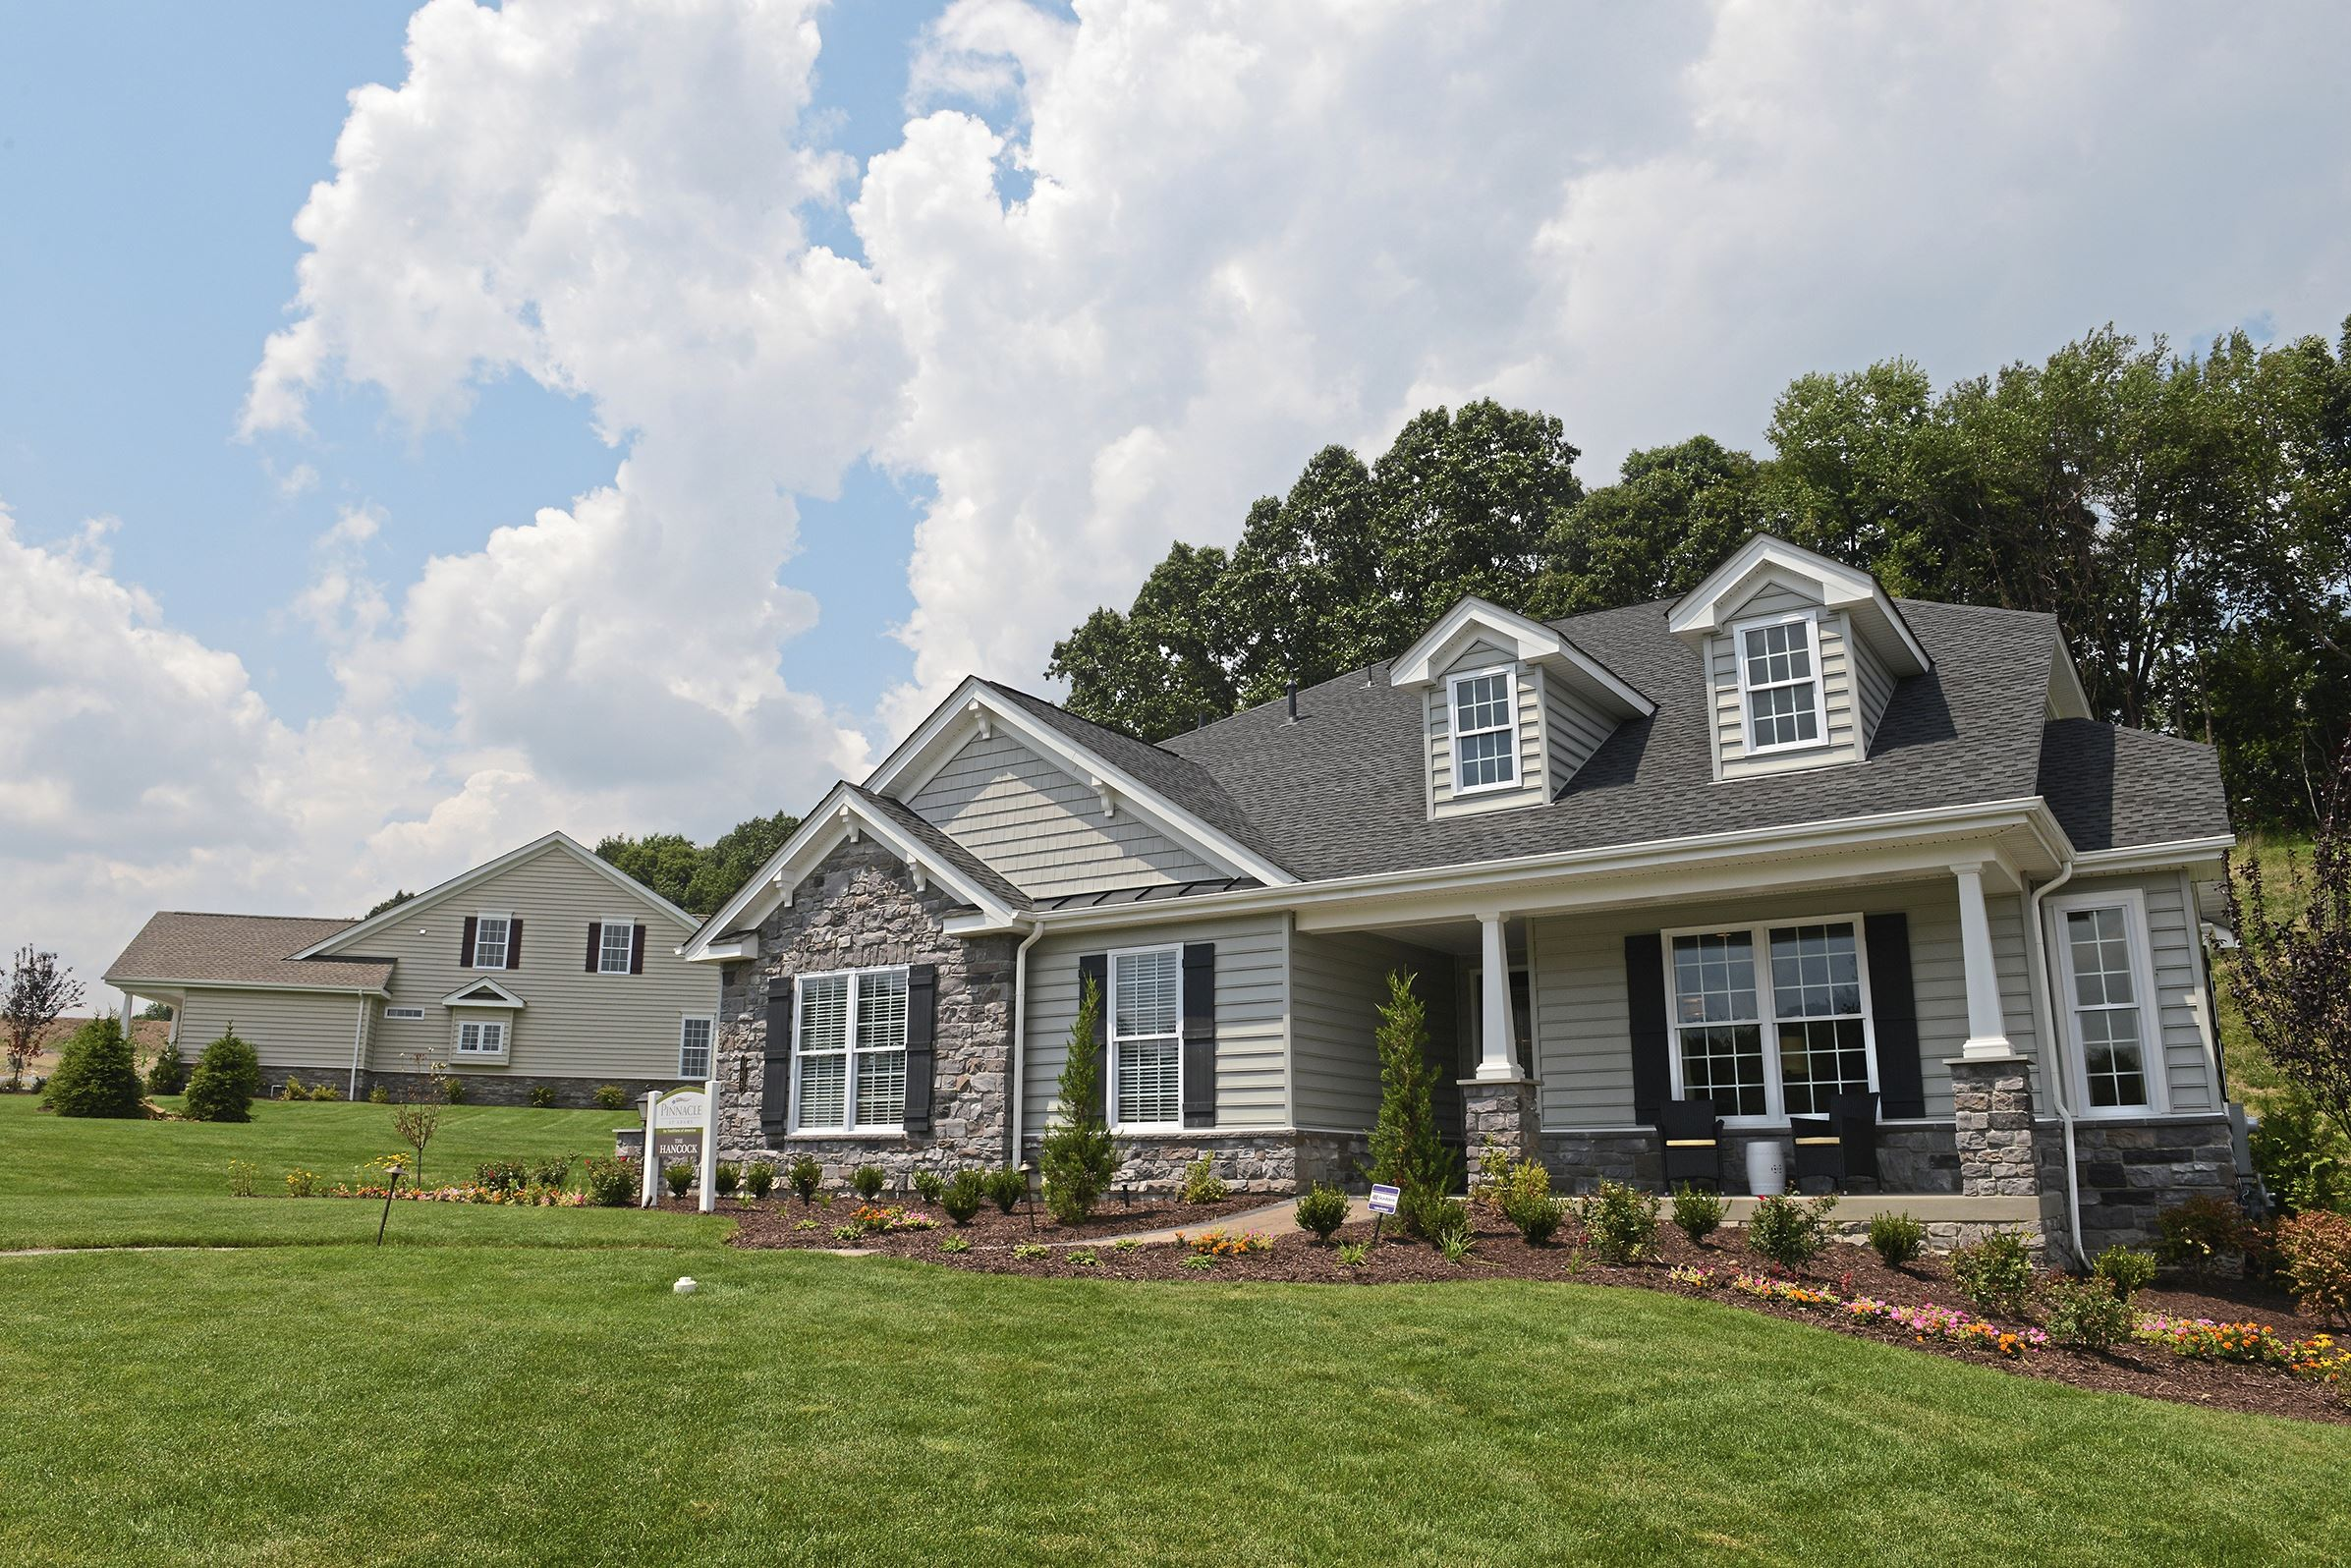 """20170802lf-House01 The exterior of a model home at Pinnacle at Adams in Adams Township is a 55-plus housing community by """"Traditions of America""""."""